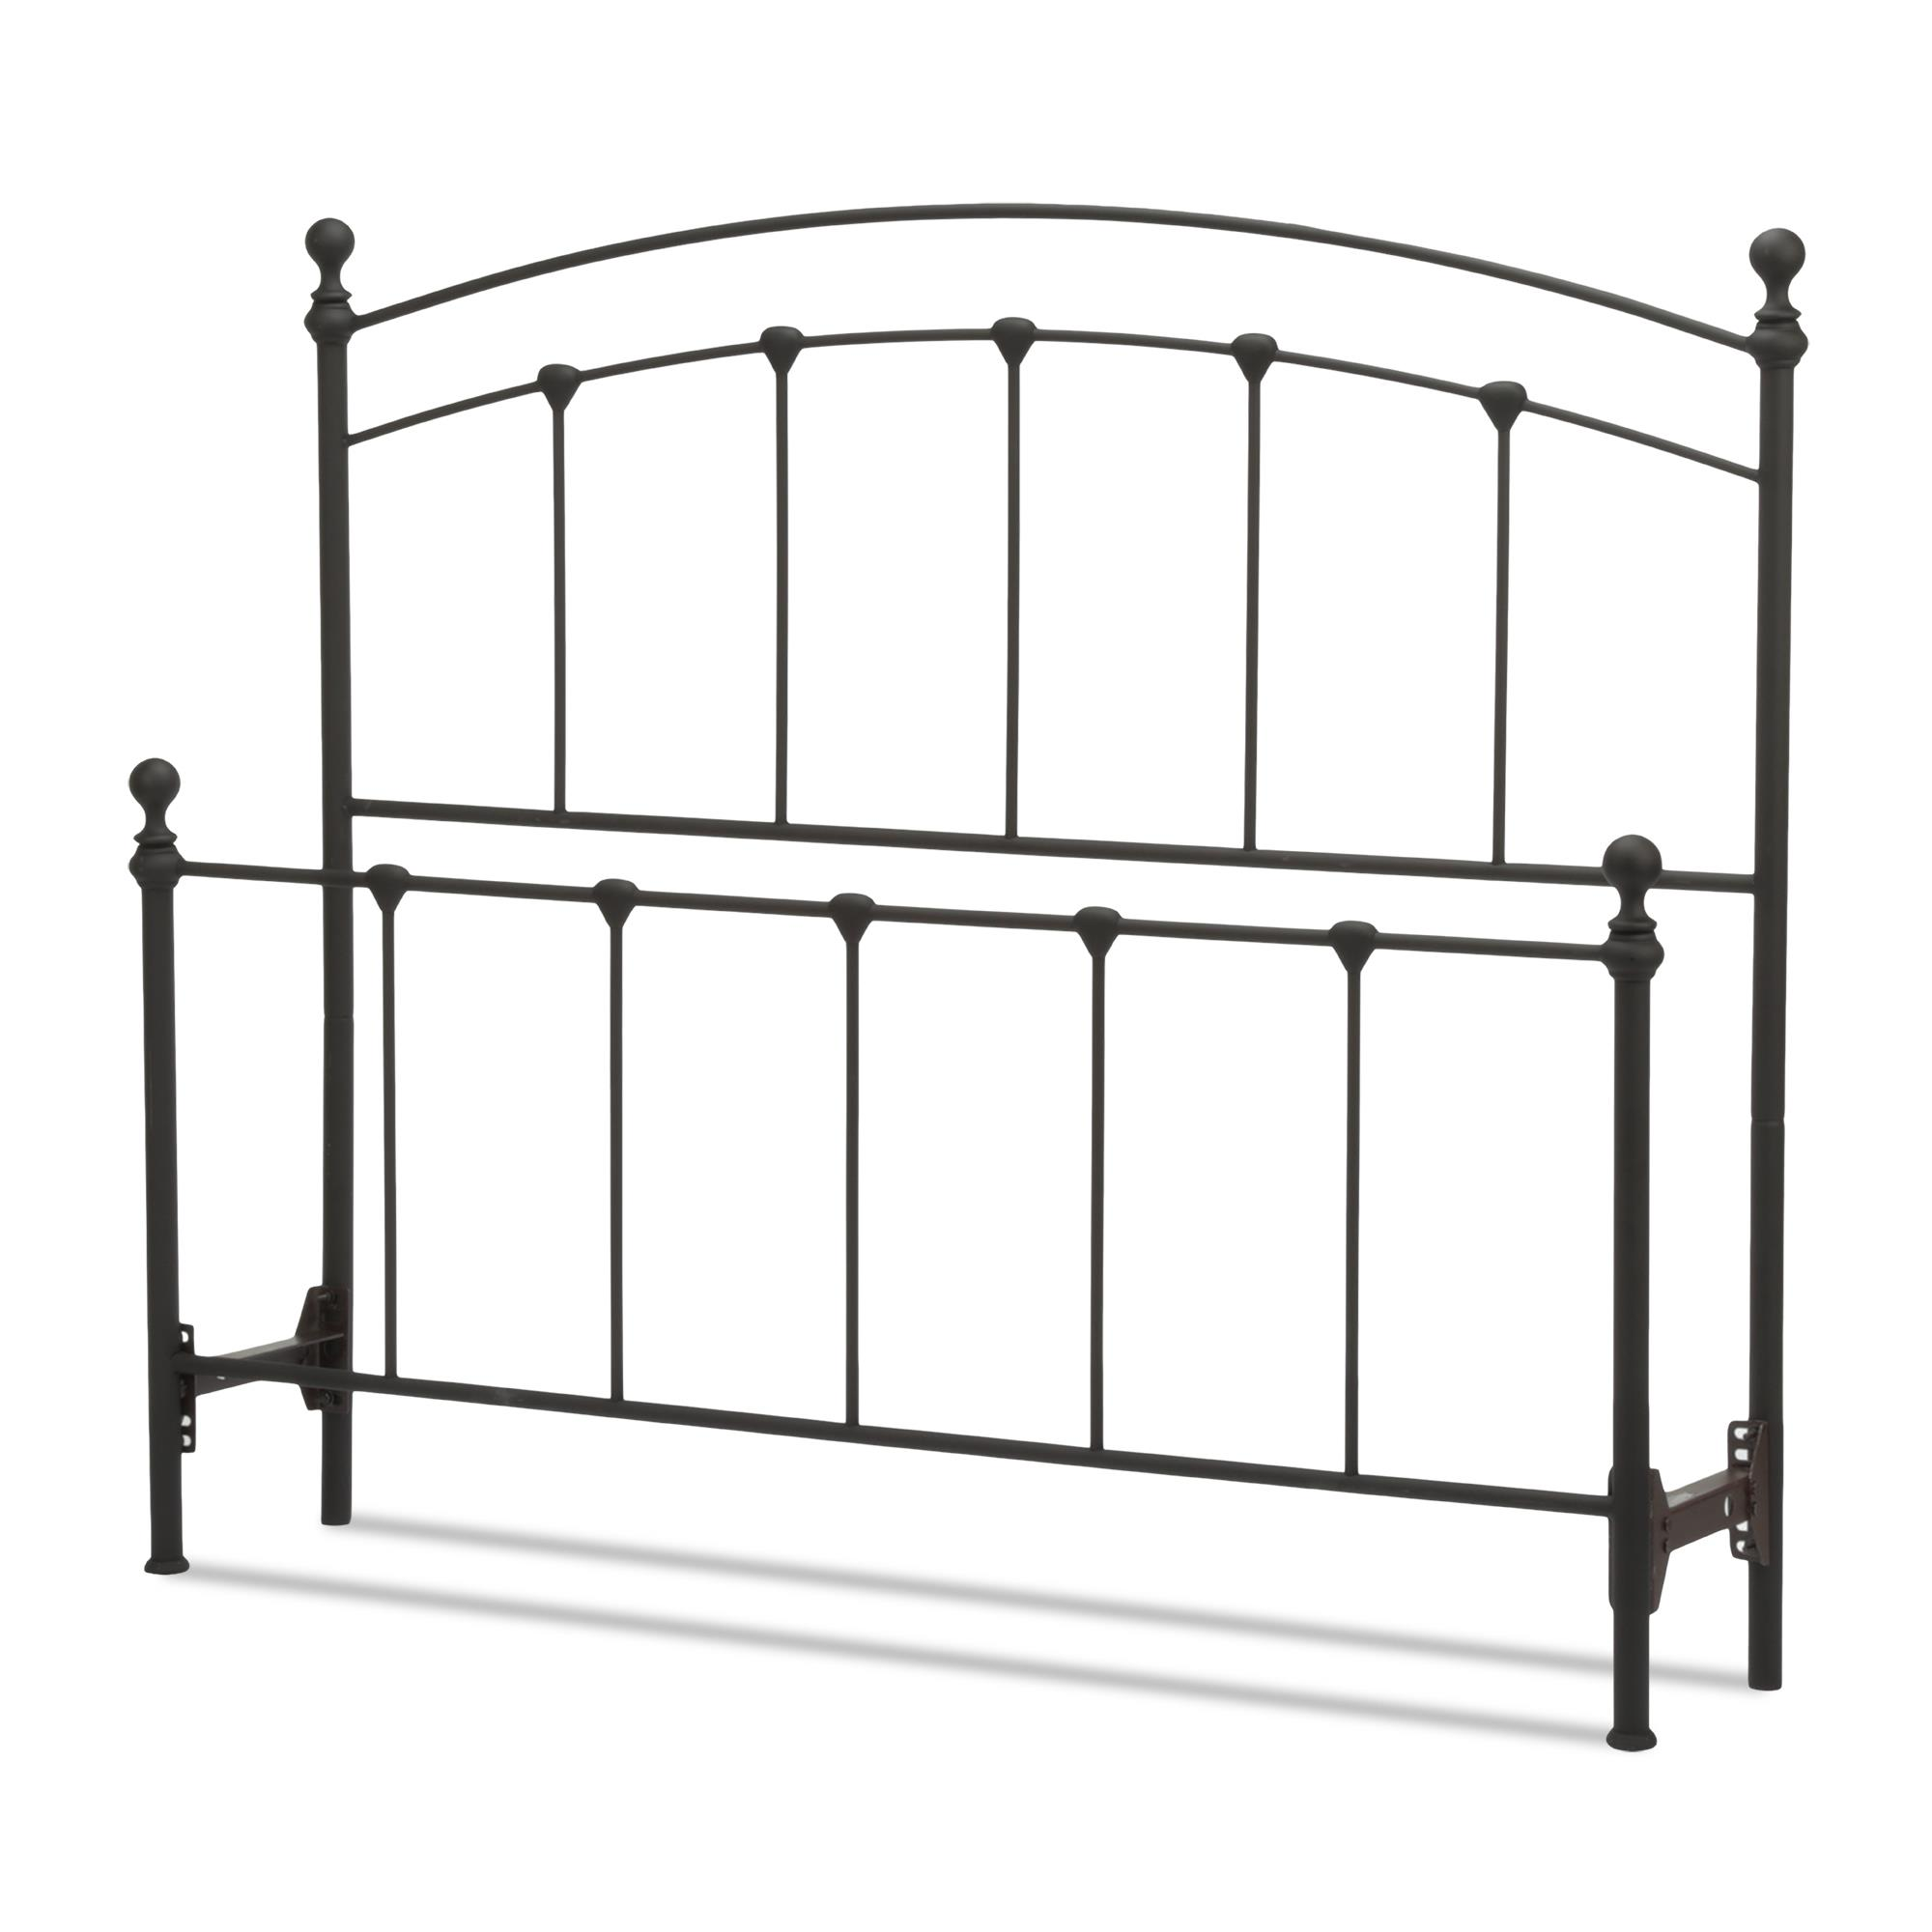 Sanford Metal Headboard and Footboard Bed Panels with Castings and Round Finial Posts, Matte Black Finish, California King